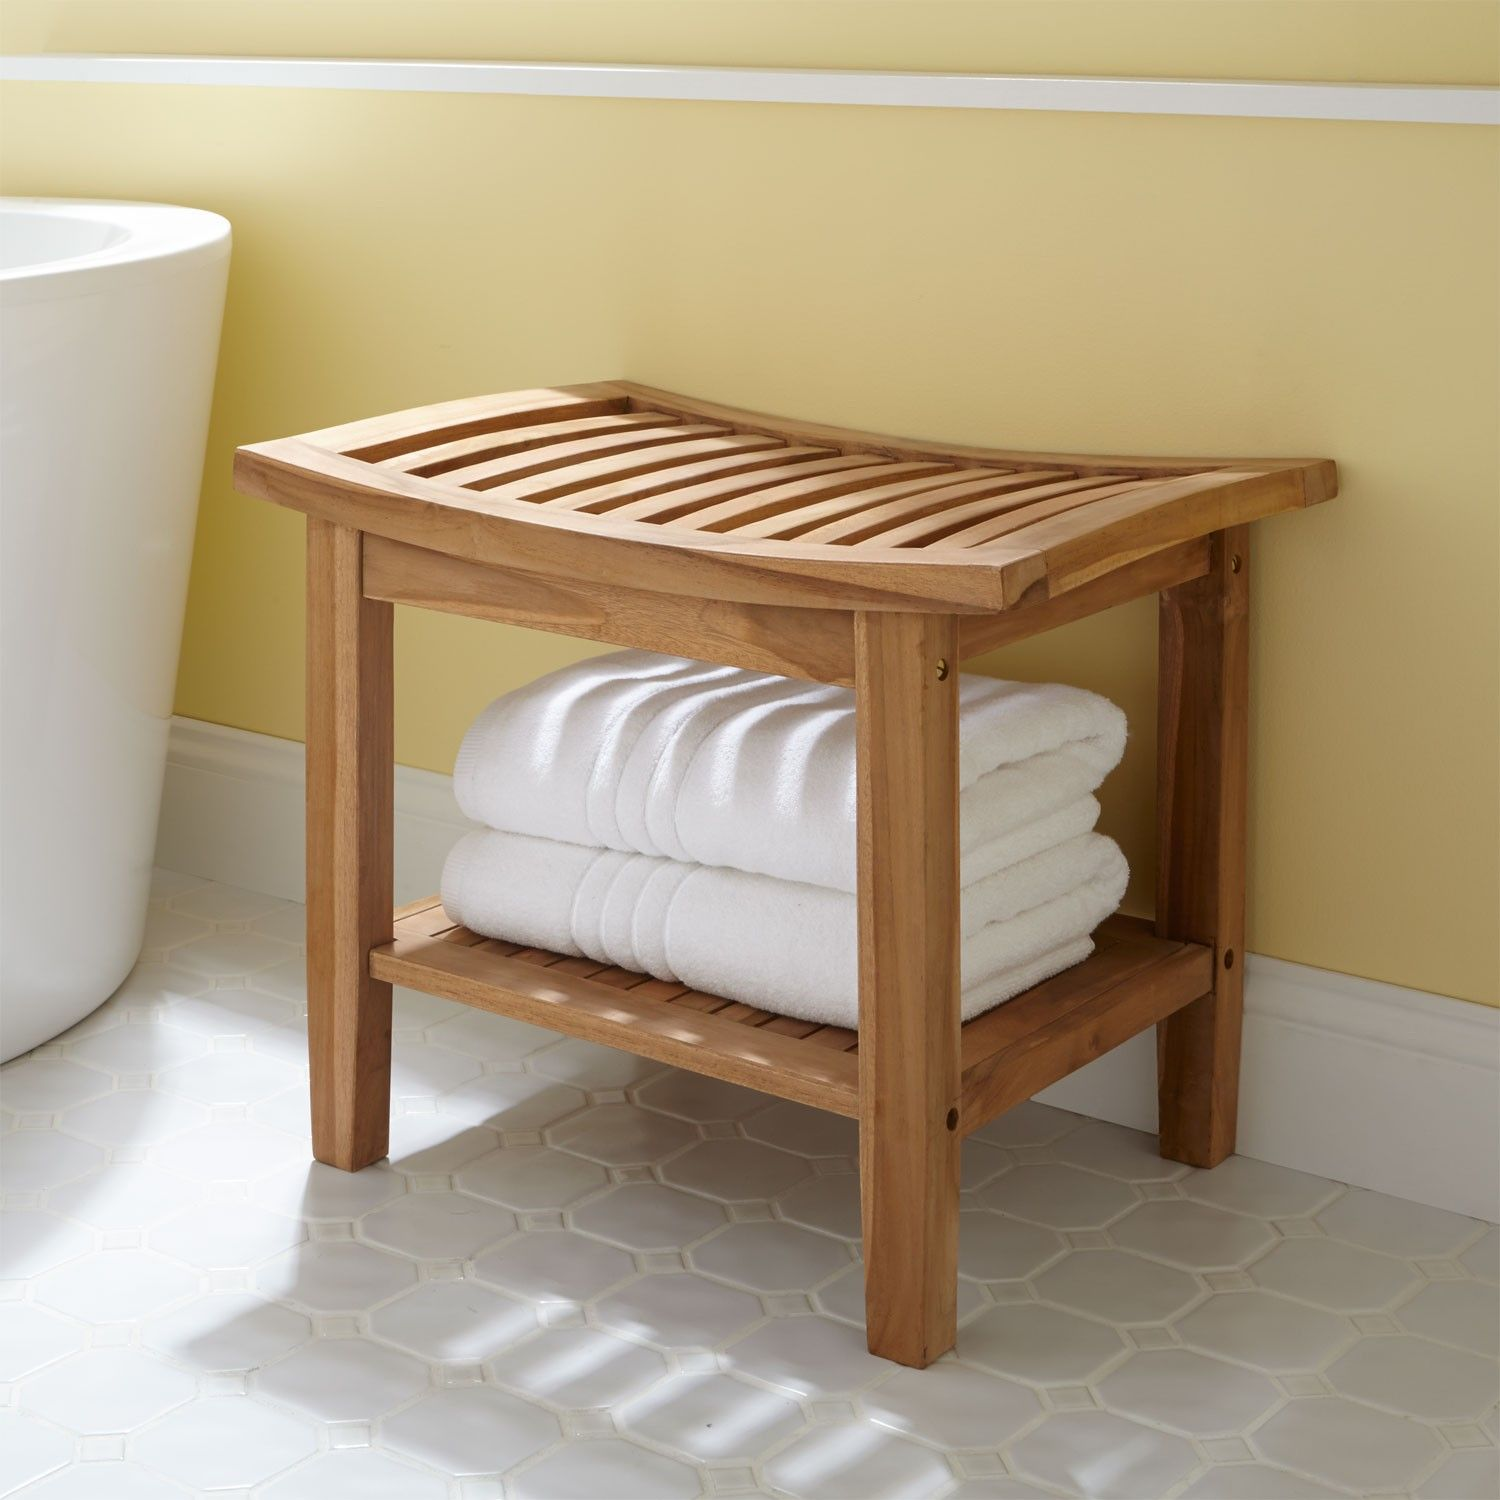 Elok Teak Shower Seat Shower Seat And Teak